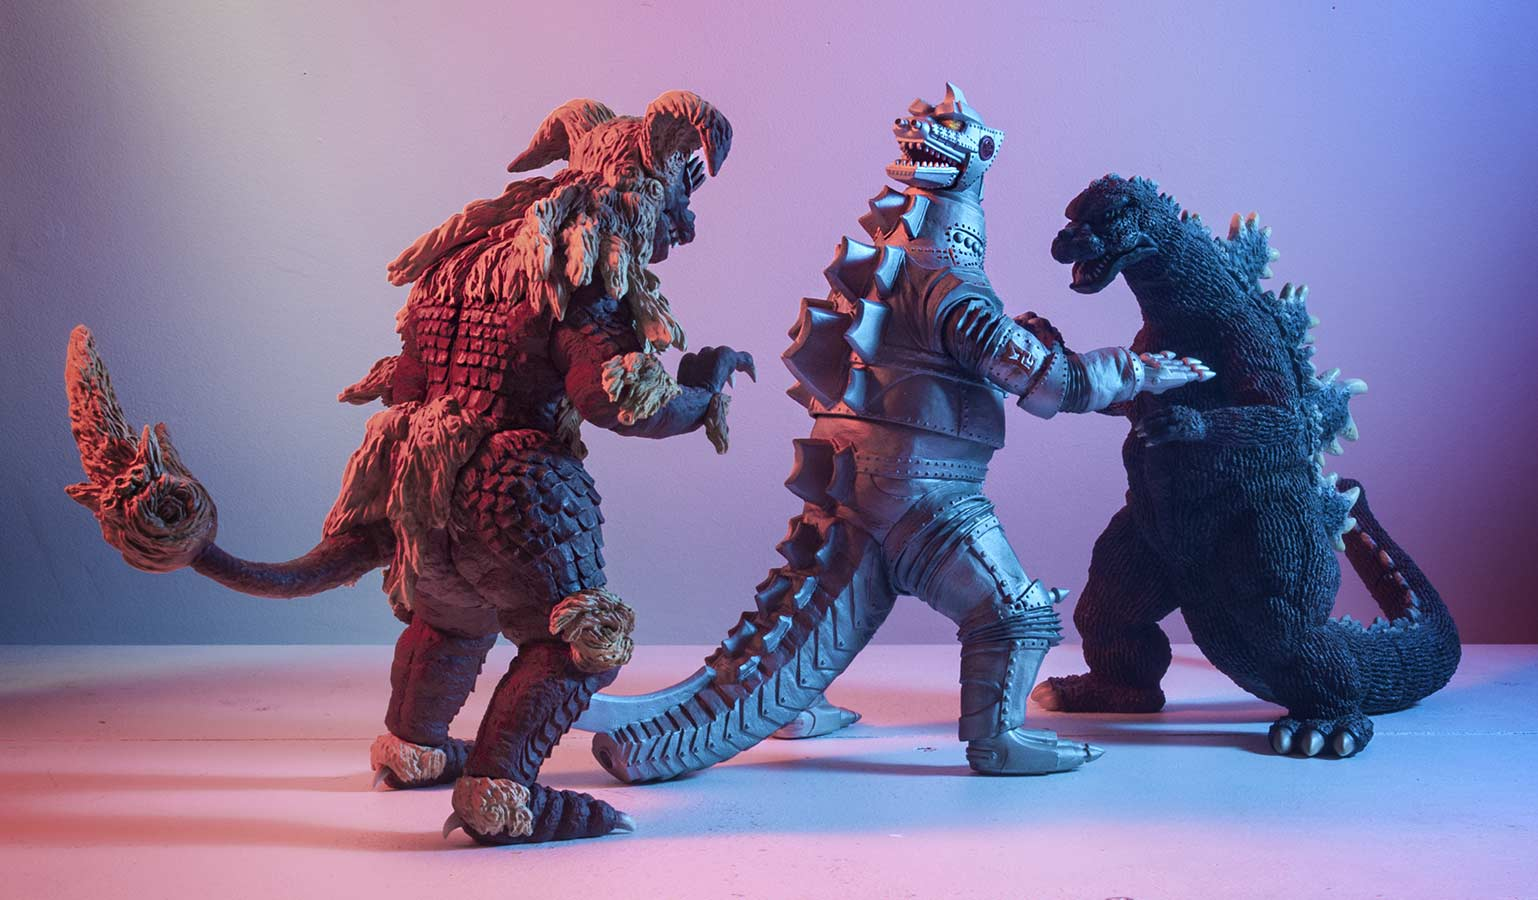 X-Plus King Caesar, Mechagodzilla and Godzilla.